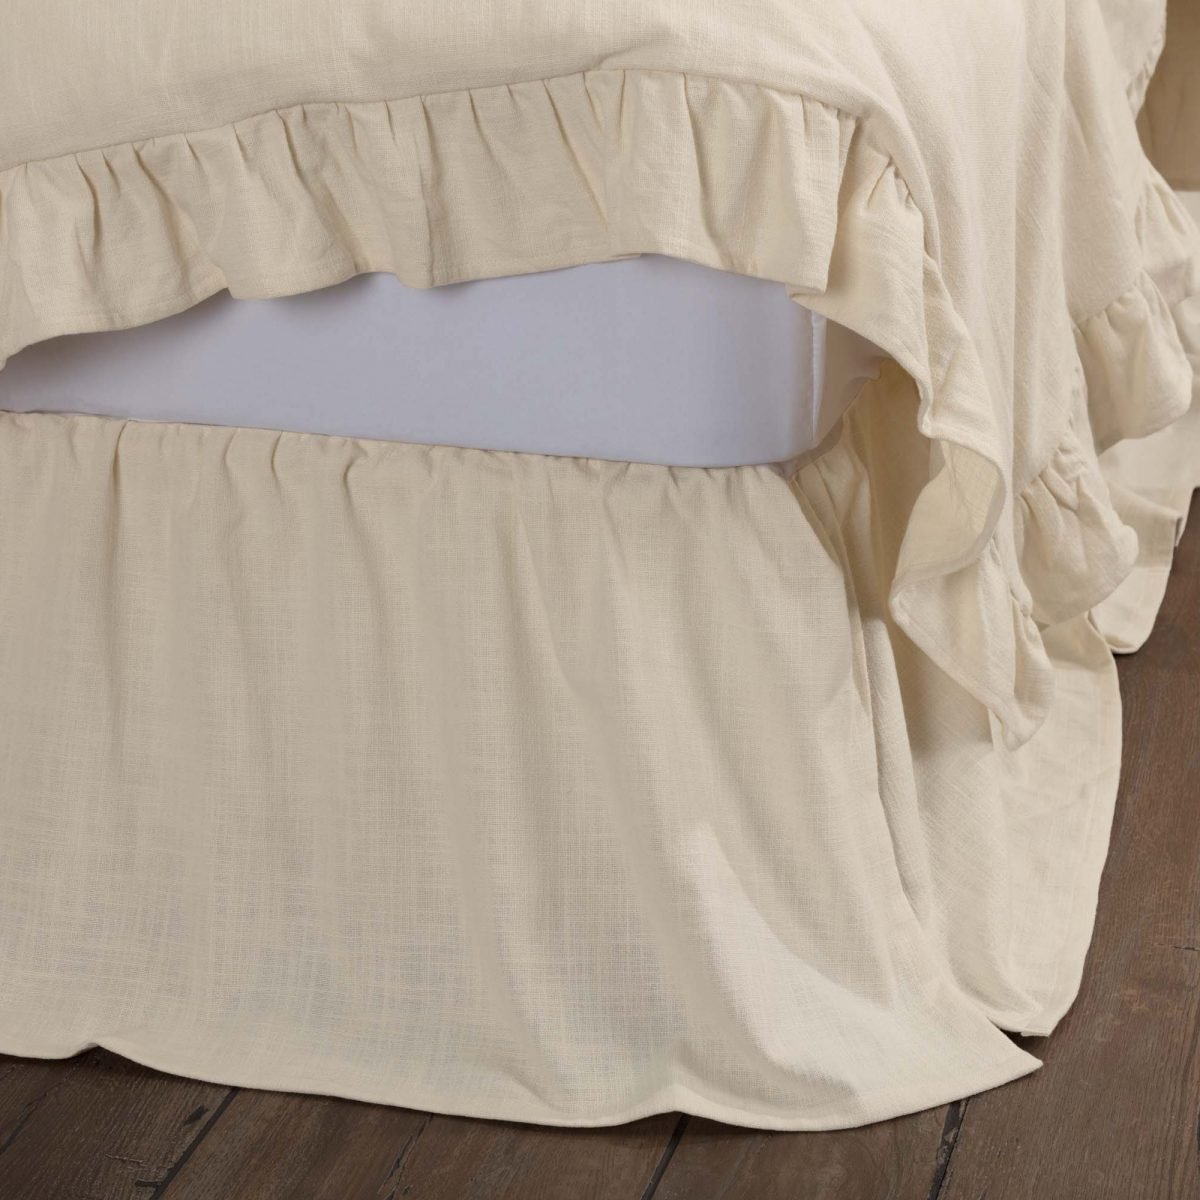 Farmhouse Style King Size Bed Skirt Rustic Bed Skirts With Ruffles